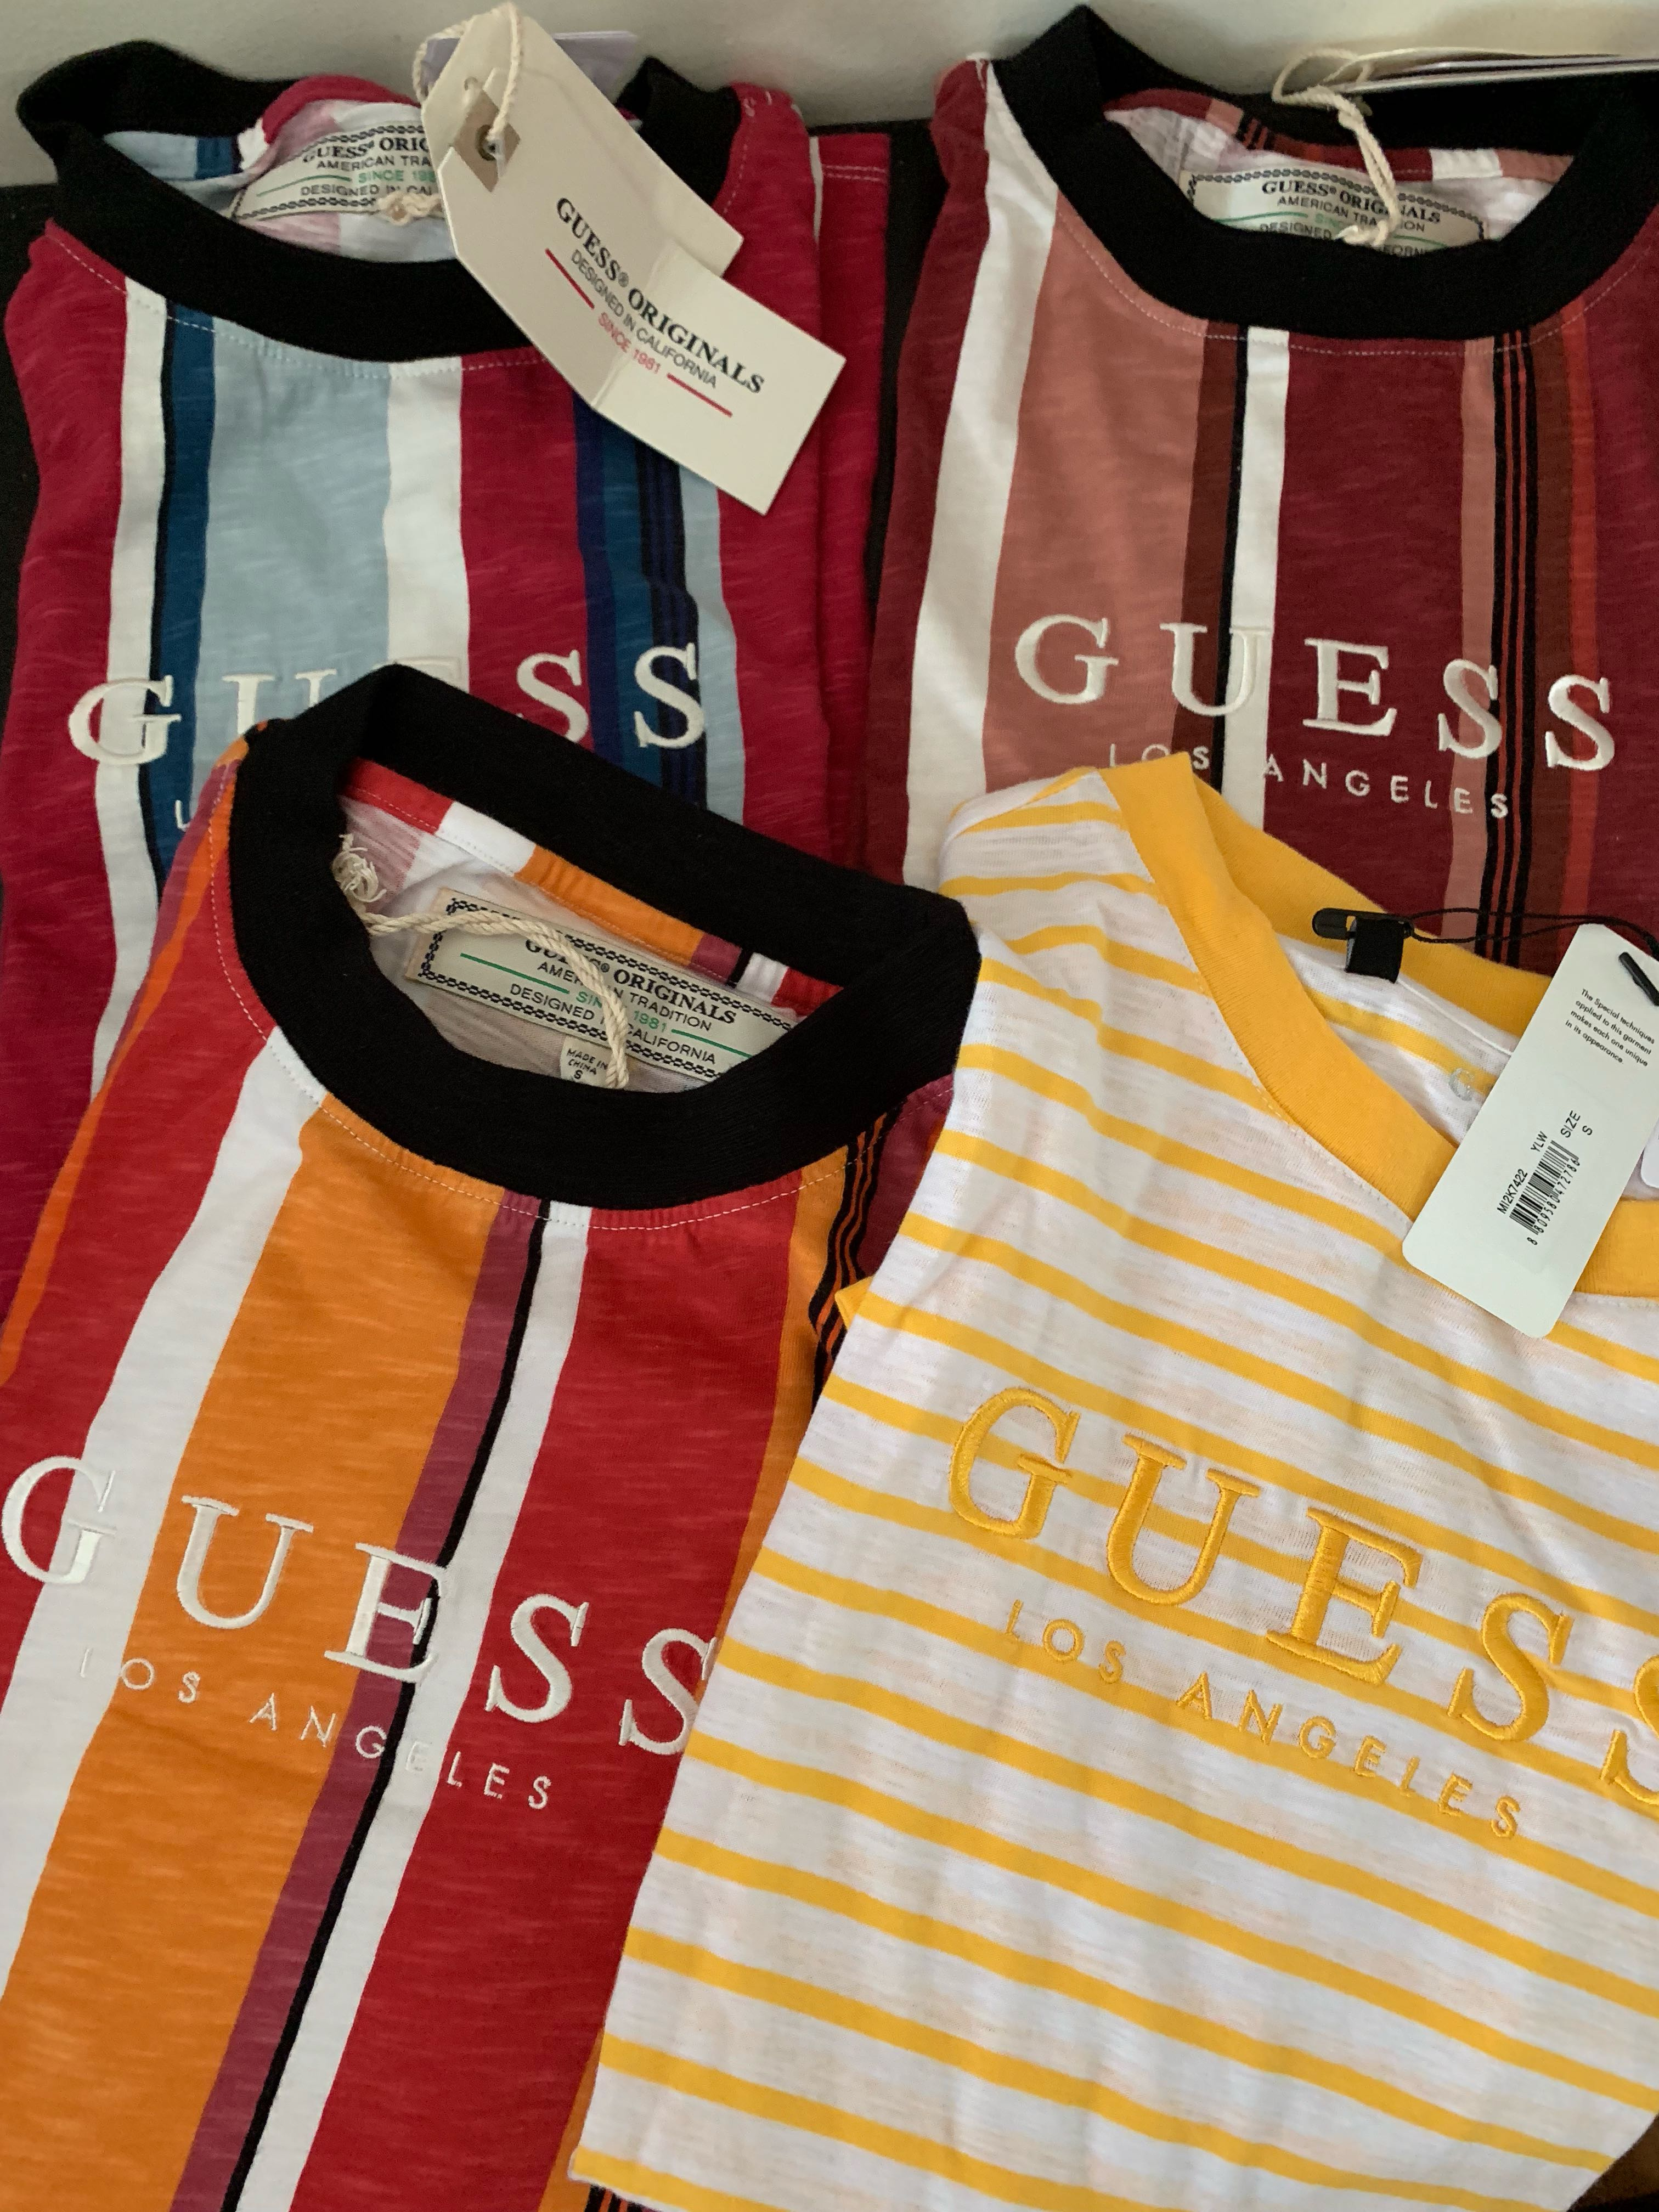 ea68e41e88 Guess Originals Striped Tee, Men's Fashion, Clothes, Tops on Carousell